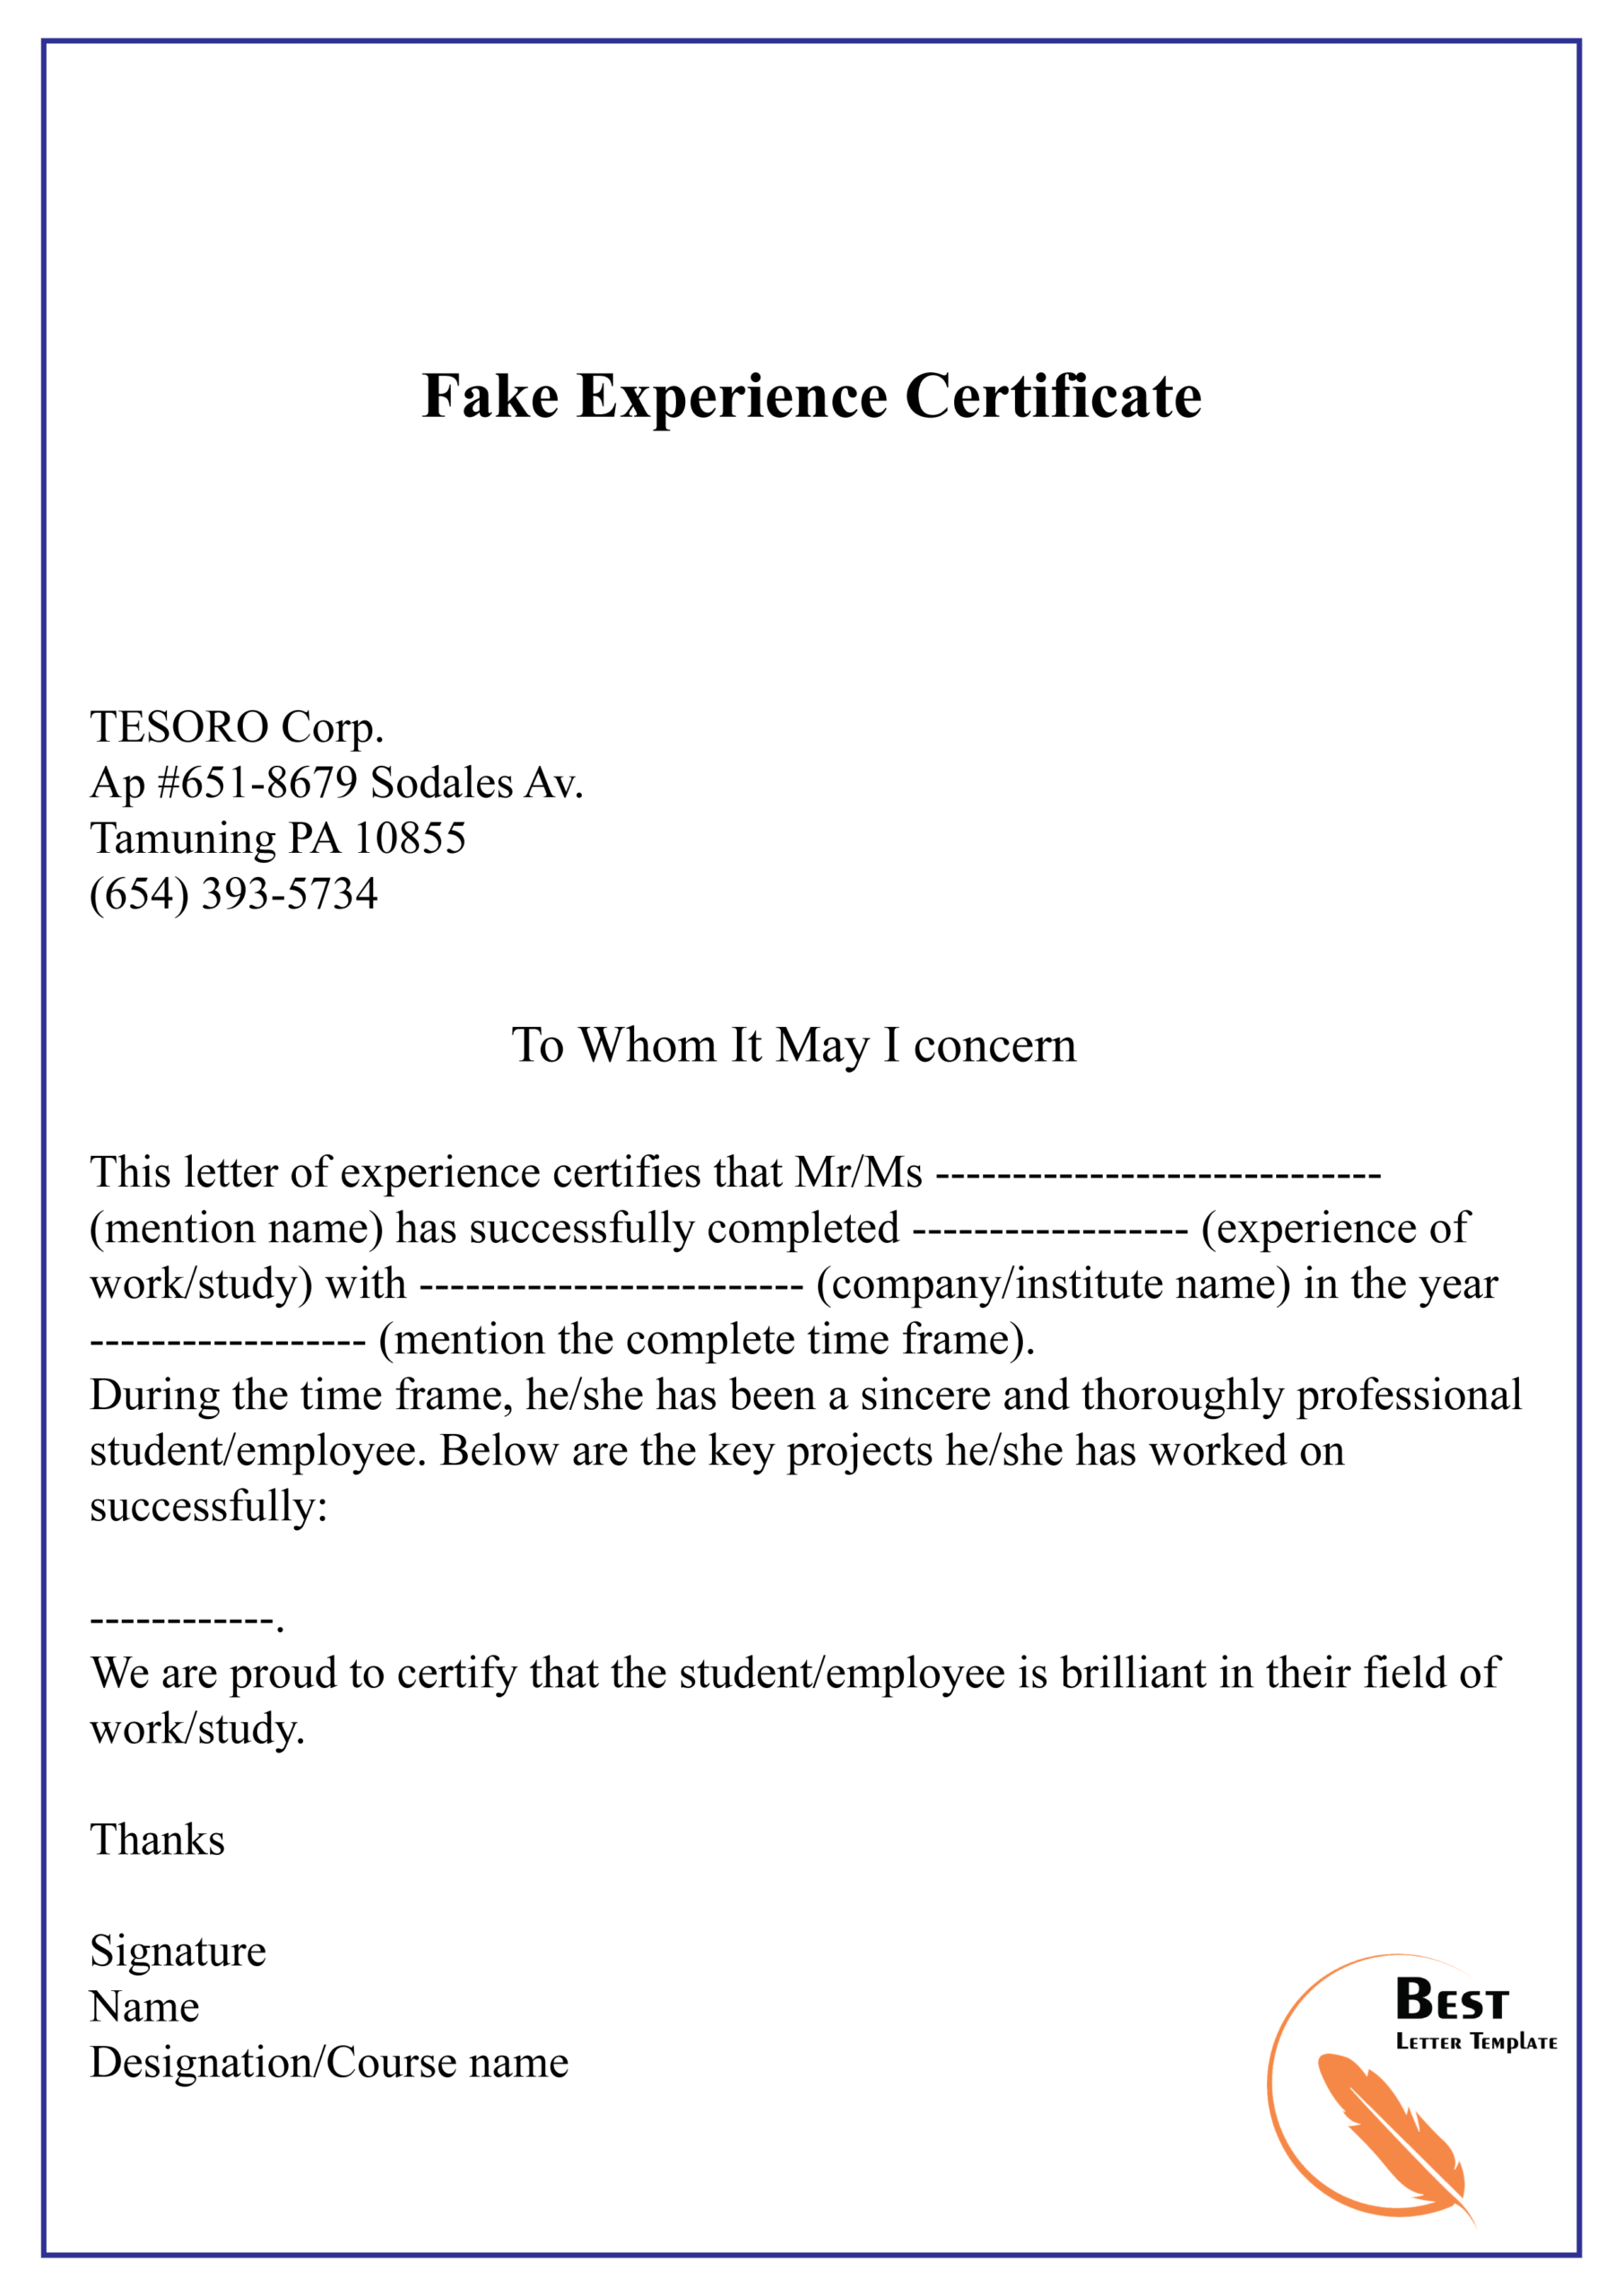 Fake Experience Certificate 01   Best Letter Template Regarding Certificate Of Experience Template